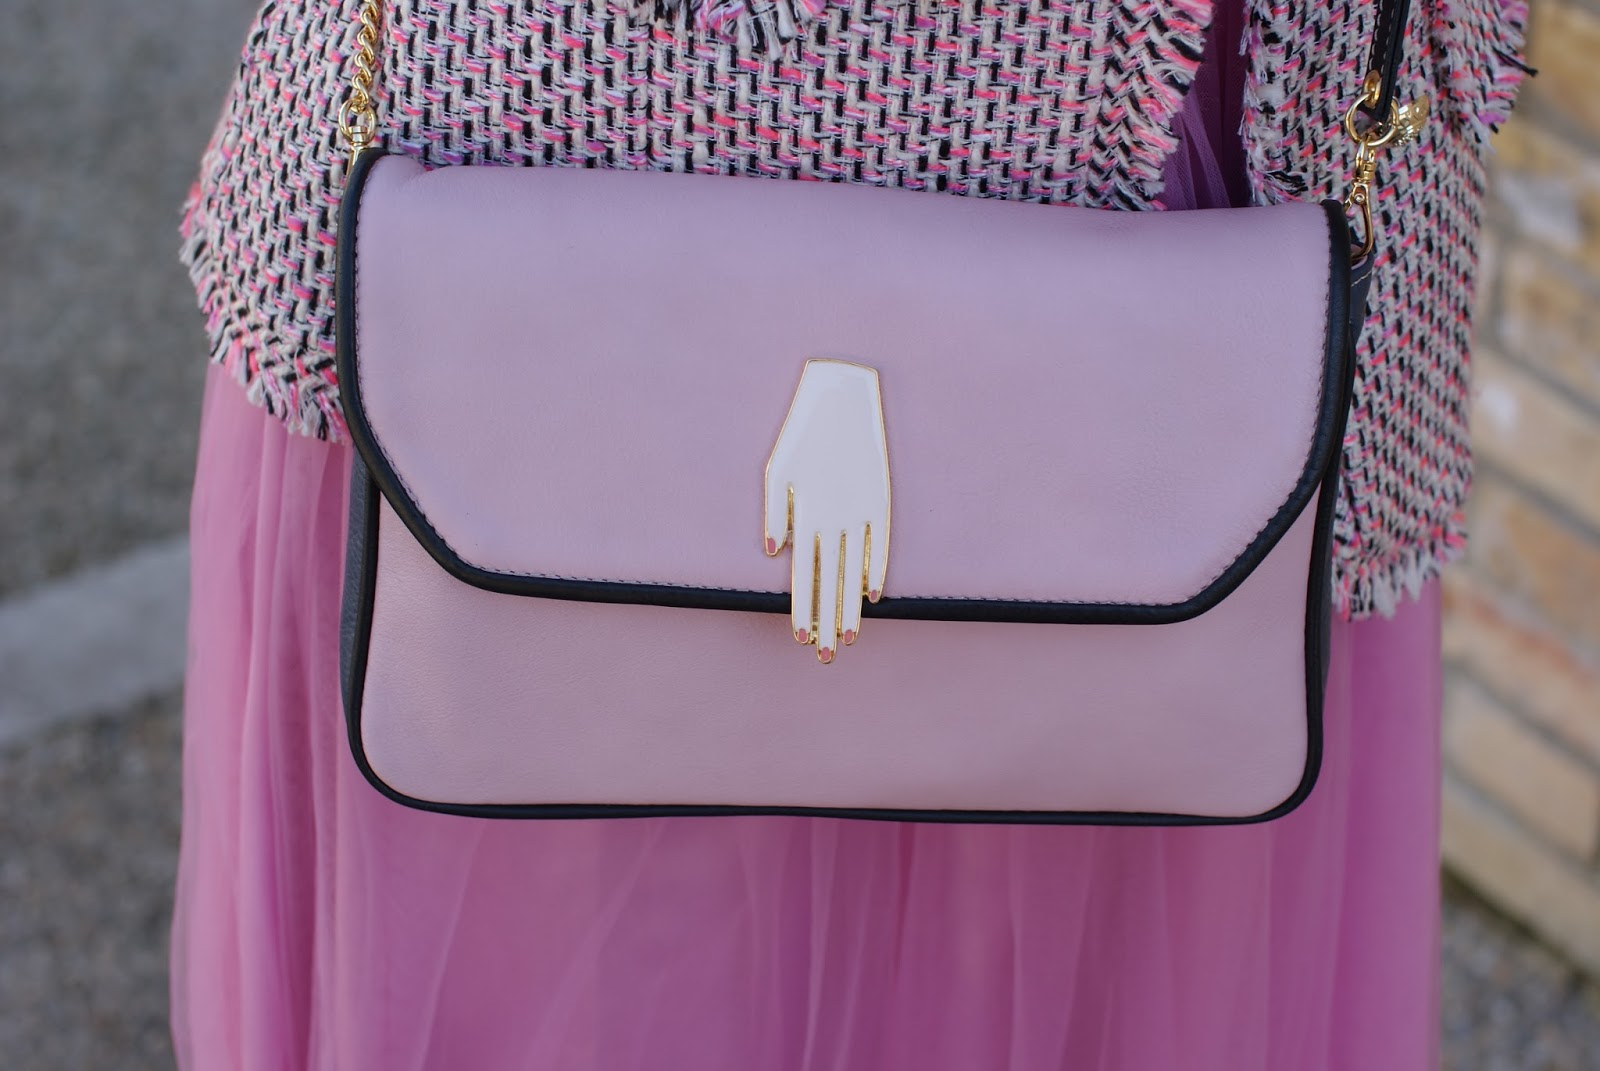 Lazzari pink bag for a romantic outfit on Fashion and Cookies fashion blog, fashion blogger style